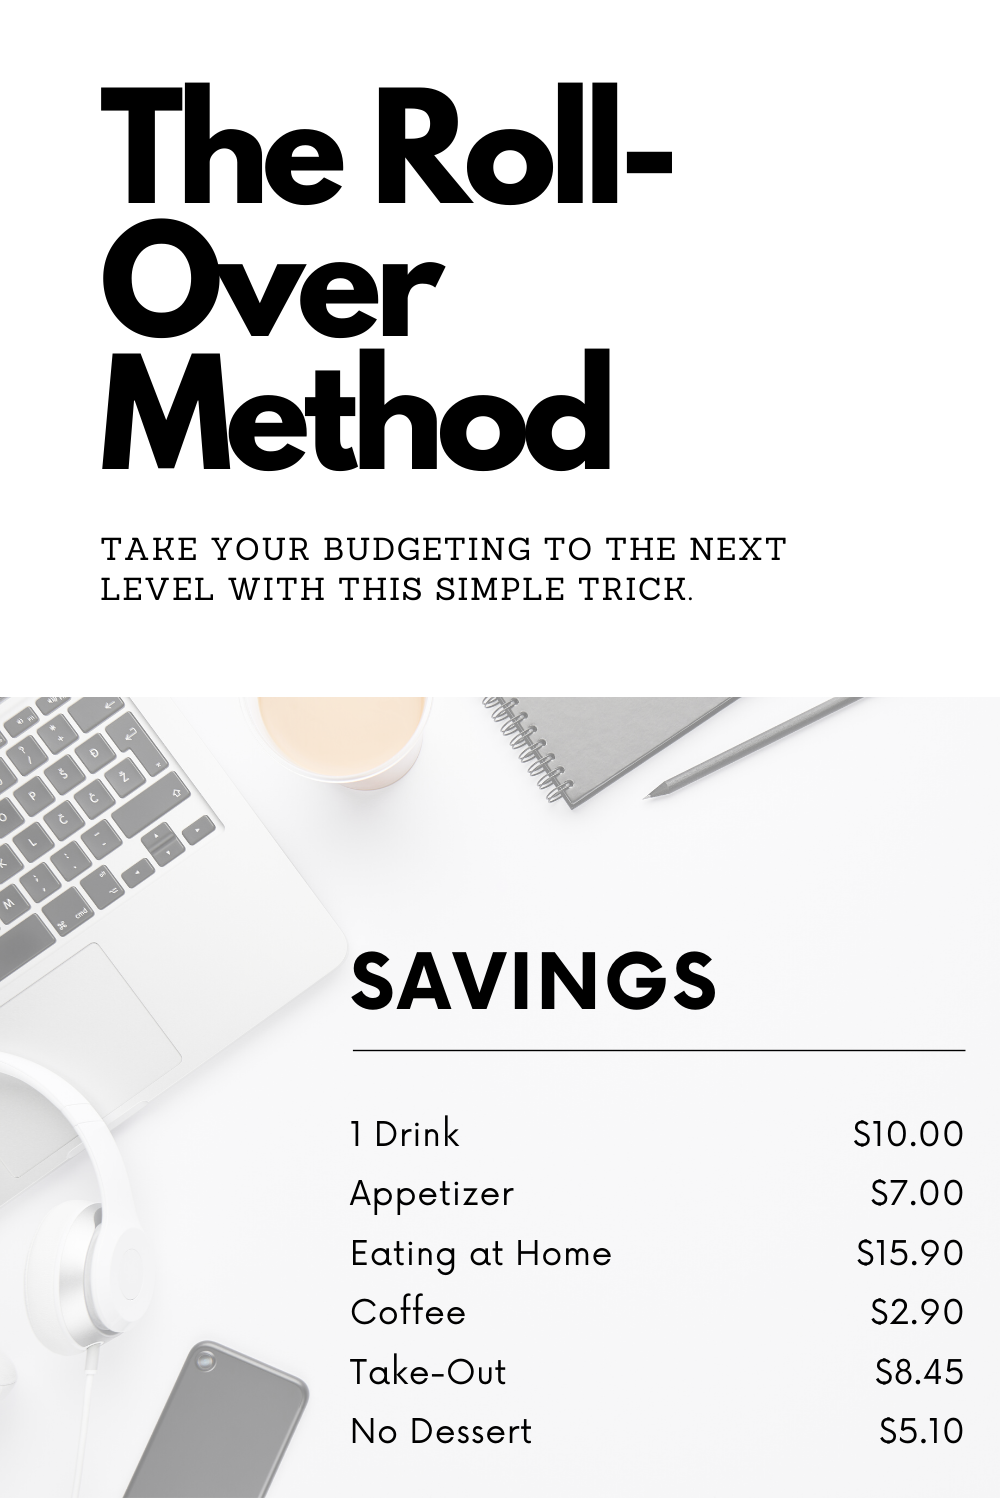 The Roll Over Method Save 100s With This Simple Trick In 2020 Budgeting Money Saving Tips Money Saving Plan